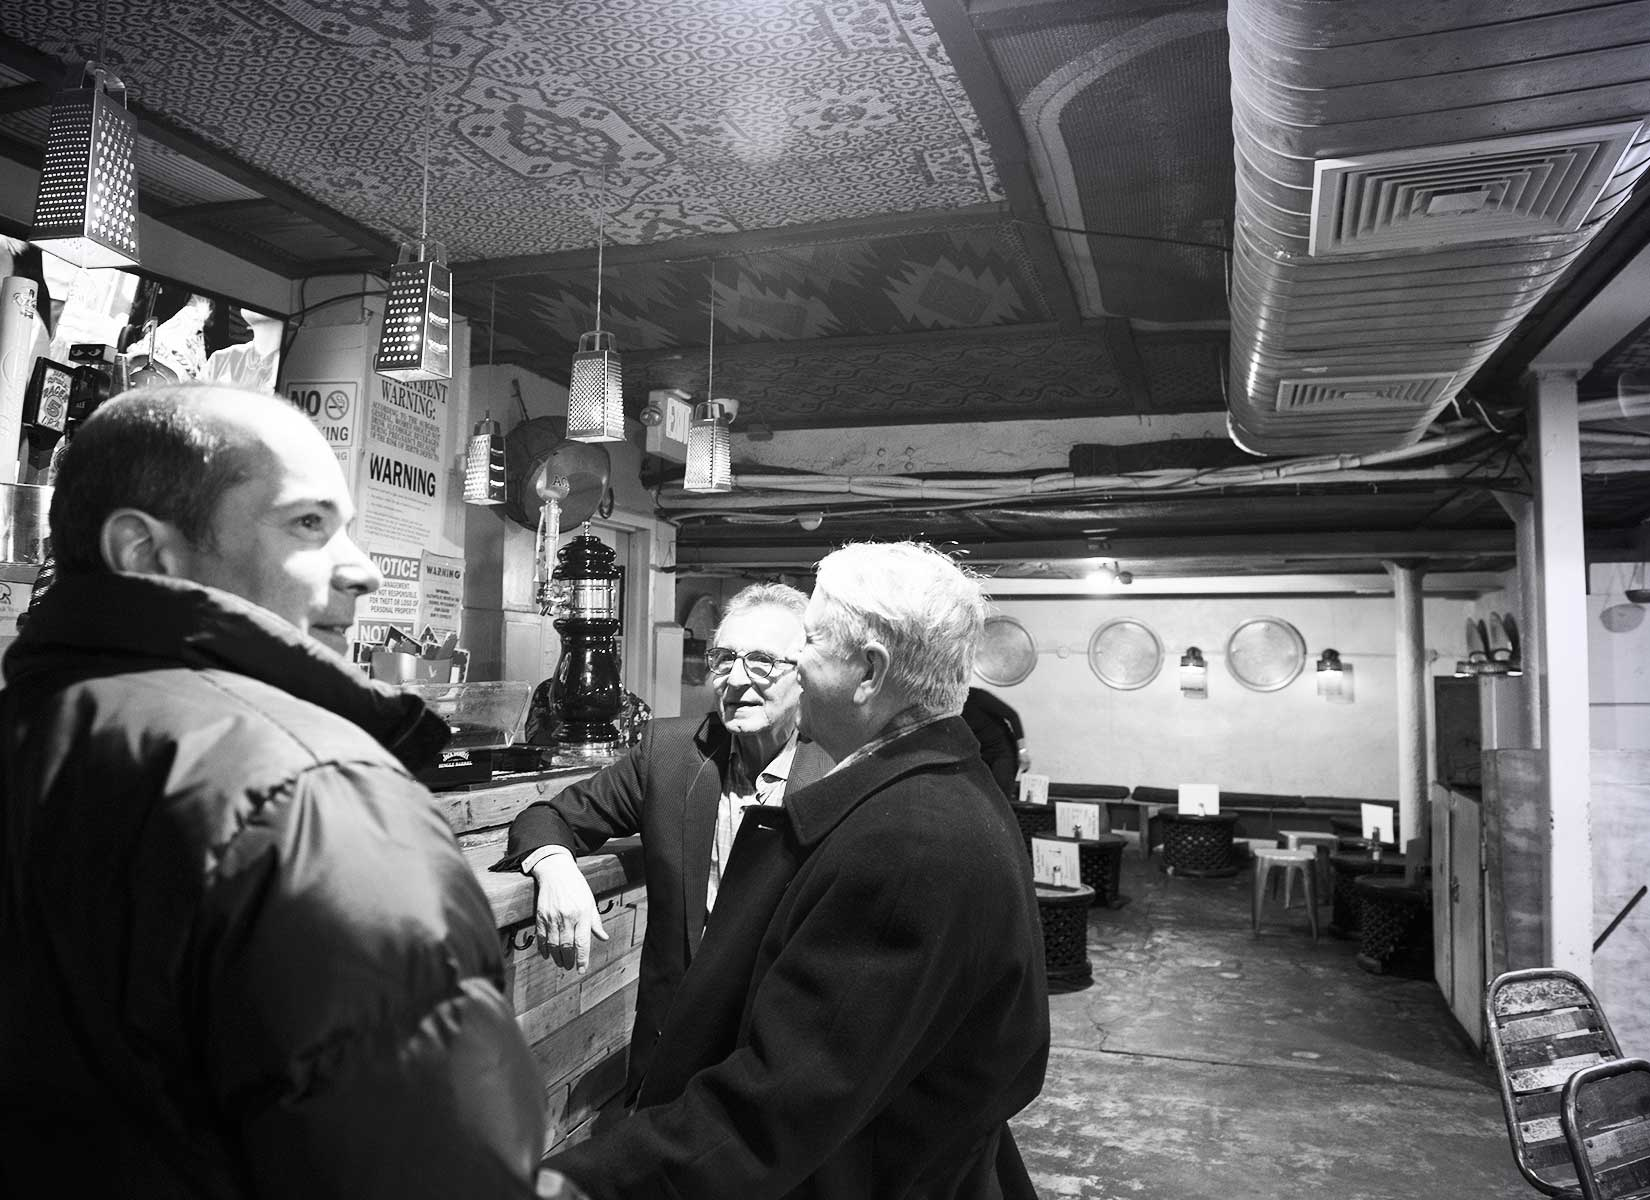 Dan Conn, Edward Joseph, and Grant Weaver (pictured from left to right) take in the sights and sounds of one of Harlem's legendary jazz venues.